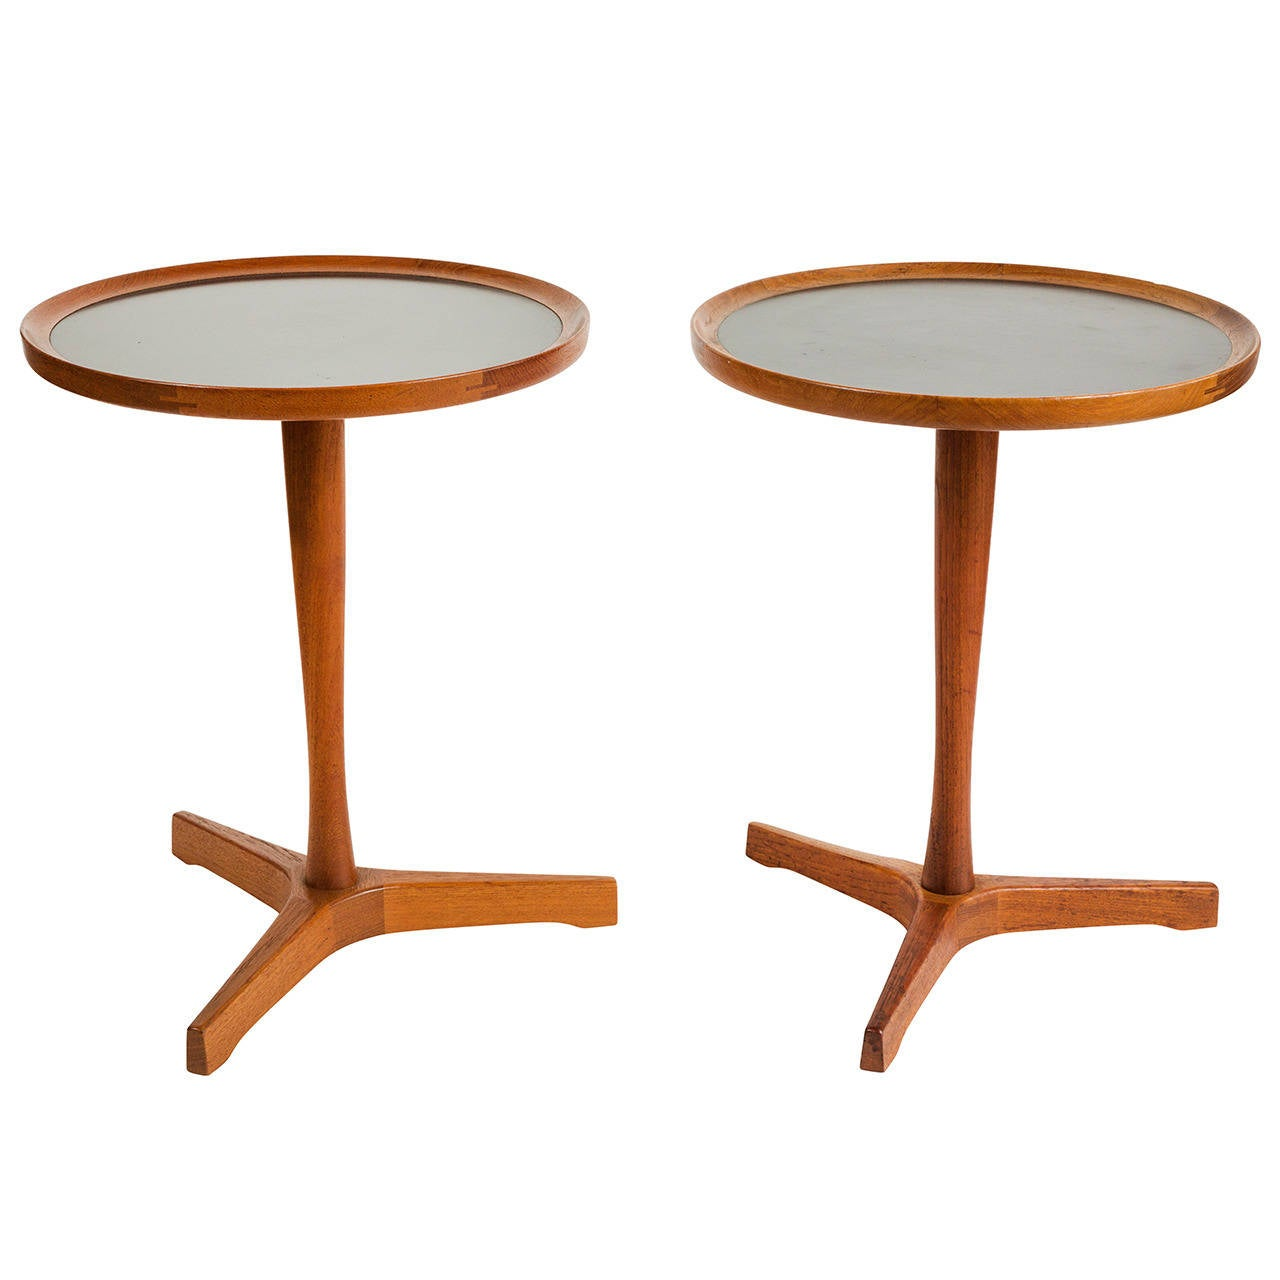 Side tables by hans c andersen at stdibs